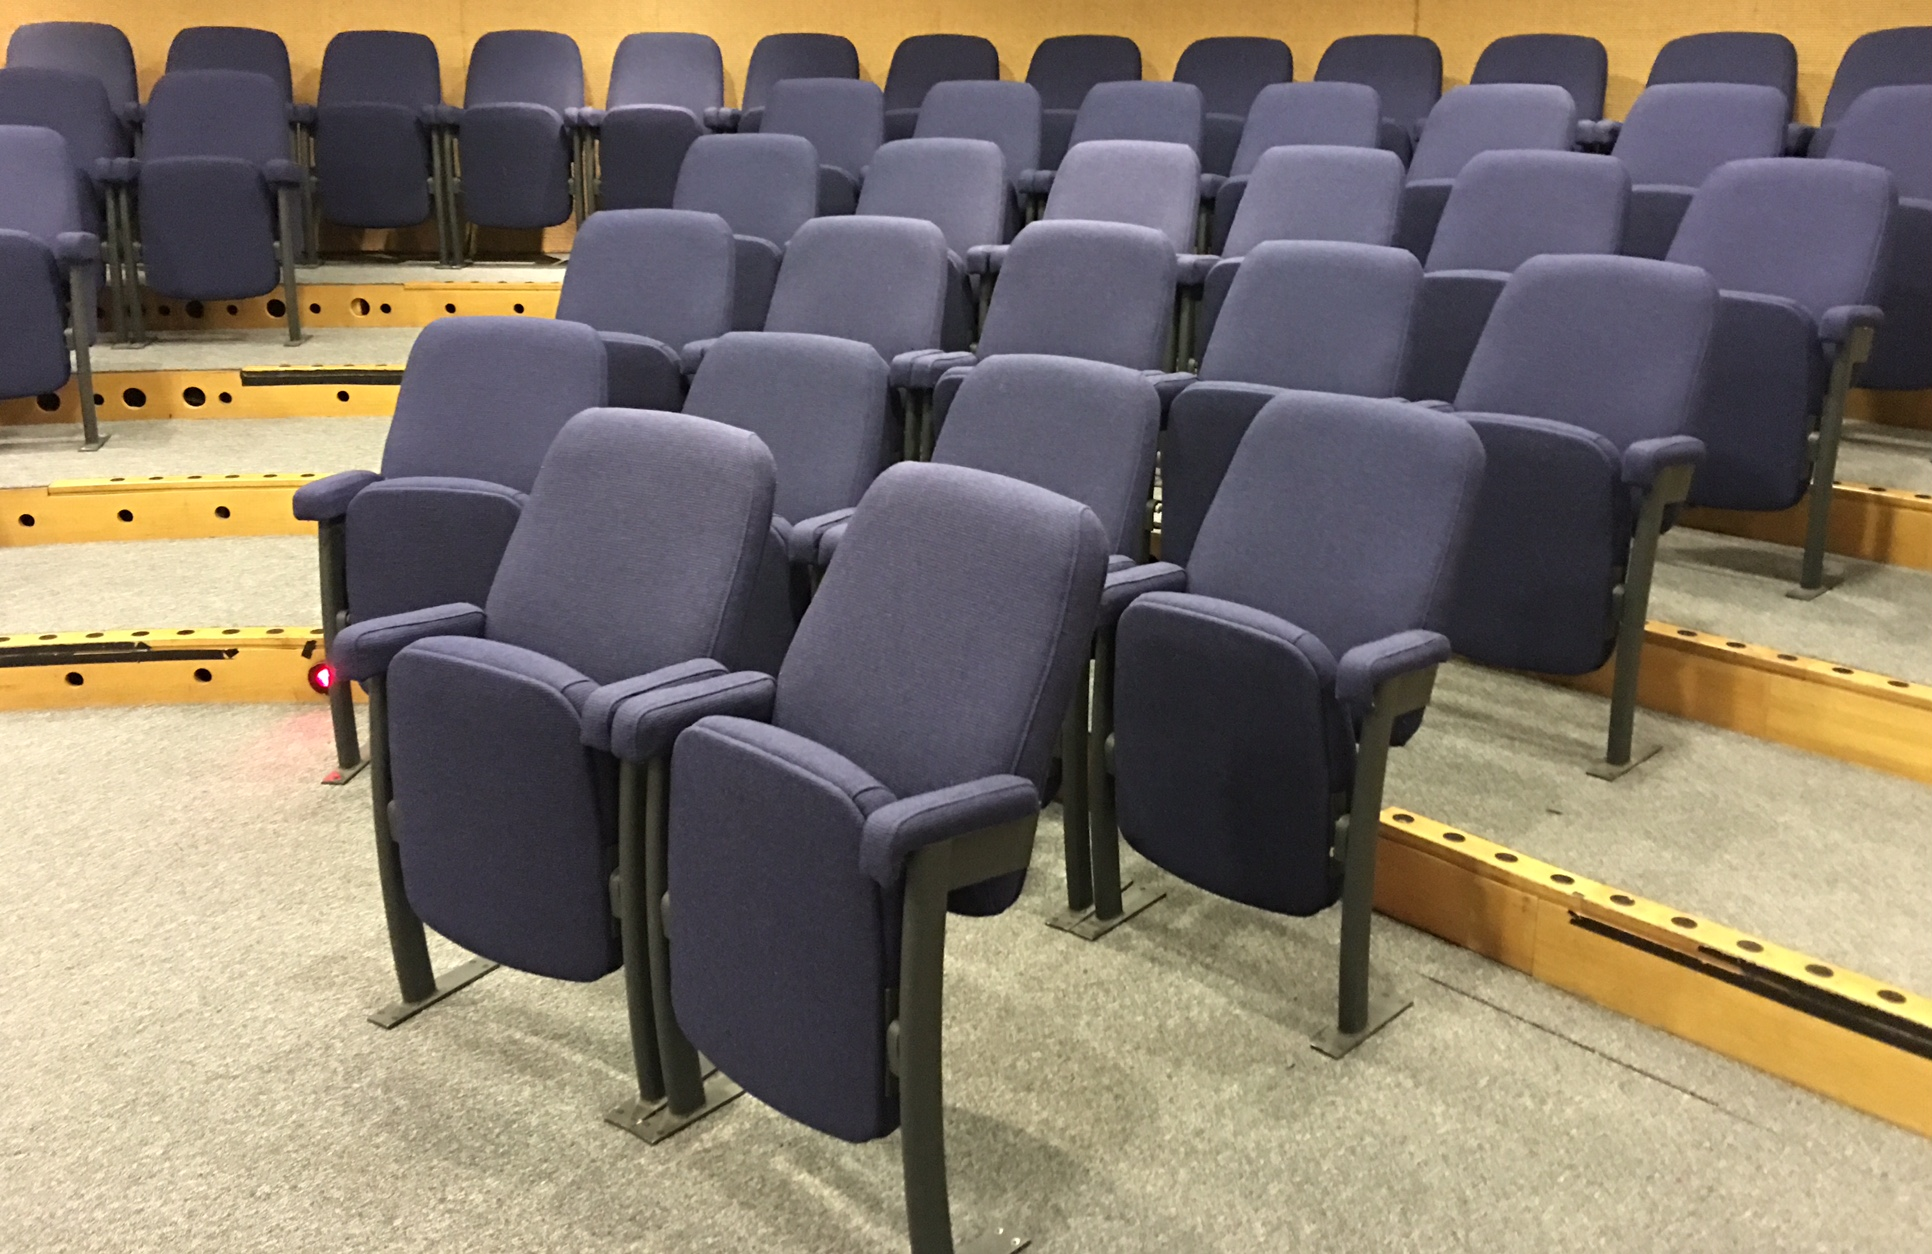 auditorium-seating-reupholstery-4